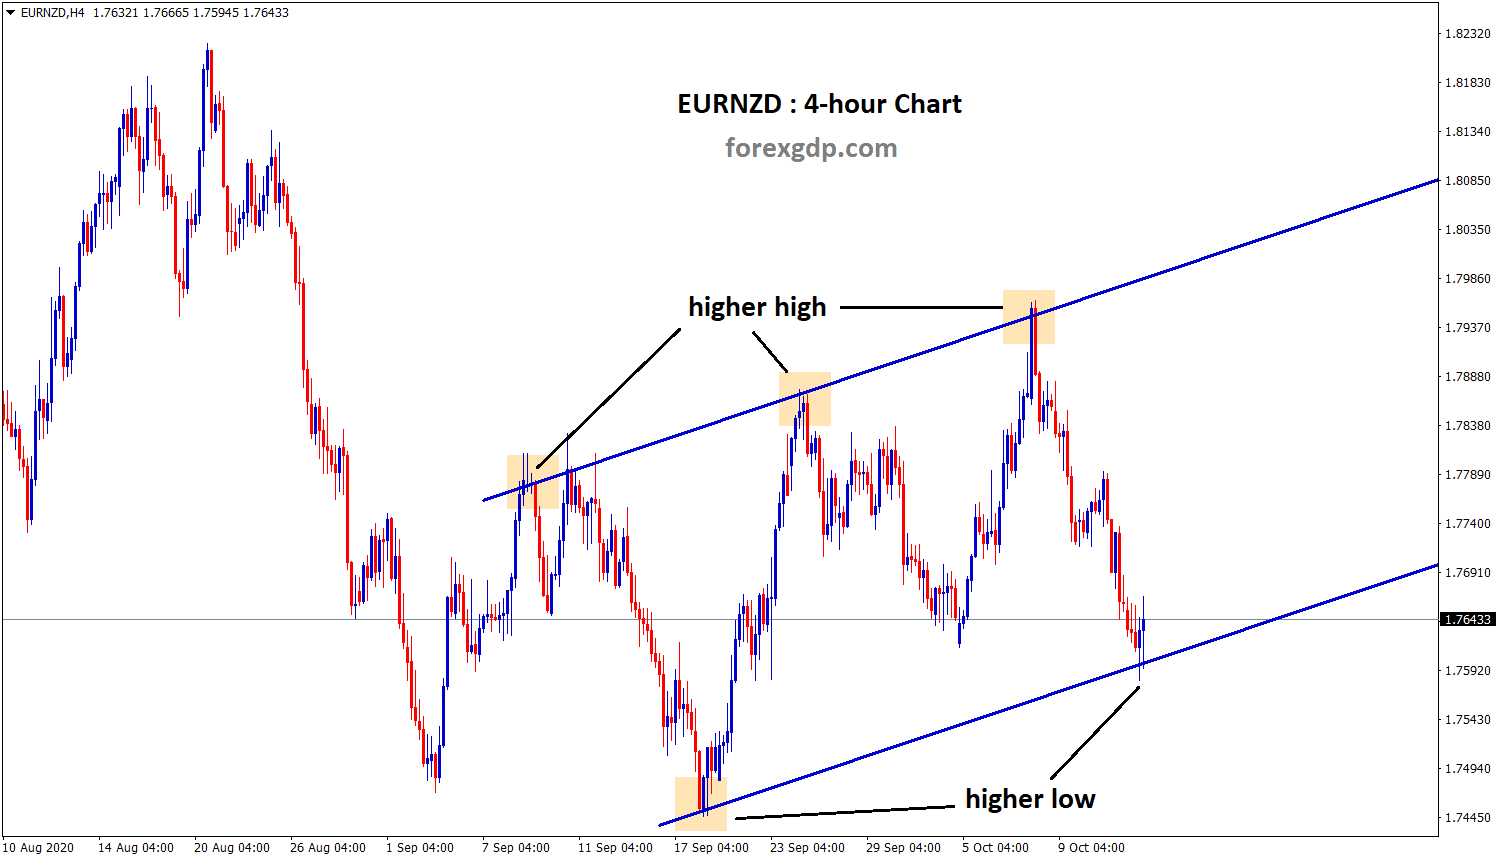 eurnzd at the higher low zone now